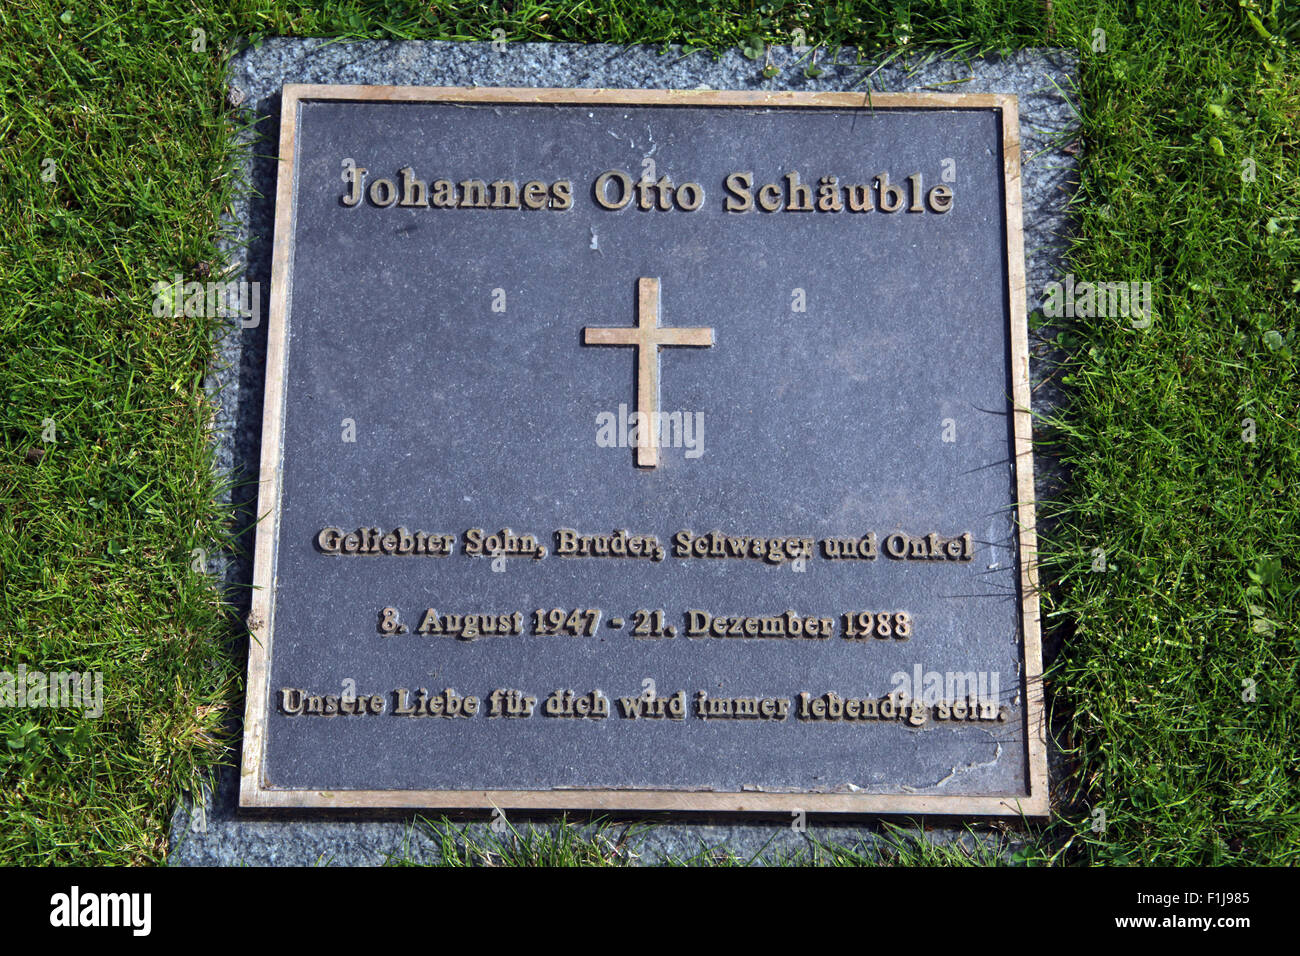 Otto Schauble,Scotland,Lodge,Visitors,Centre,DLVC,Trust,Lockerbie,Memorial,Remembrance,Scotland,Victims,Pan,Am,PanAm,flight,103,bomb,bombing,terrorist,December,1988,attack,crash,dead,site,21/12/1988,270,victims,Scottish,Town,conspiracy,blast,Tundergarth,Room,garden,of,Dryfesdale,Cemetery,New York,GoTonySmith,Lodge,Visitors,Centre,DLVC,Trust,Lockerbie,Memorial,Scotland,Victims,Pan,Am,PanAm,flight,103,bomb,bombing,terrorist,December,1988,attack,crash,dead,site,21/12/1988,270,victims,Scottish,Town,conspiracy,blast,Tundergarth,Room,garden,of,Dryfesdale,Cemetery,news,Cultural,understanding,remembering,innocent,transatlantic,Frankfurt,Detroit,Libyan,Libya,Colonel Muammar Gaddafi,civil,case,compensation,terrorism,PA103,30,30years,years,Syracuse,University,SU,family,collections,Story,Archive,Archives,40,35,Timeline,saga,disaster,air,Scholars,program,programs,remembrance,Clipper Maid of the Seas,N739PA,Boeing,727,plane,aircraft,Scotland,UK,United Kingdom,GB,Great Britain,resting,place,Buy Pictures of,Buy Images Of,New York,al megrahi,30 Years